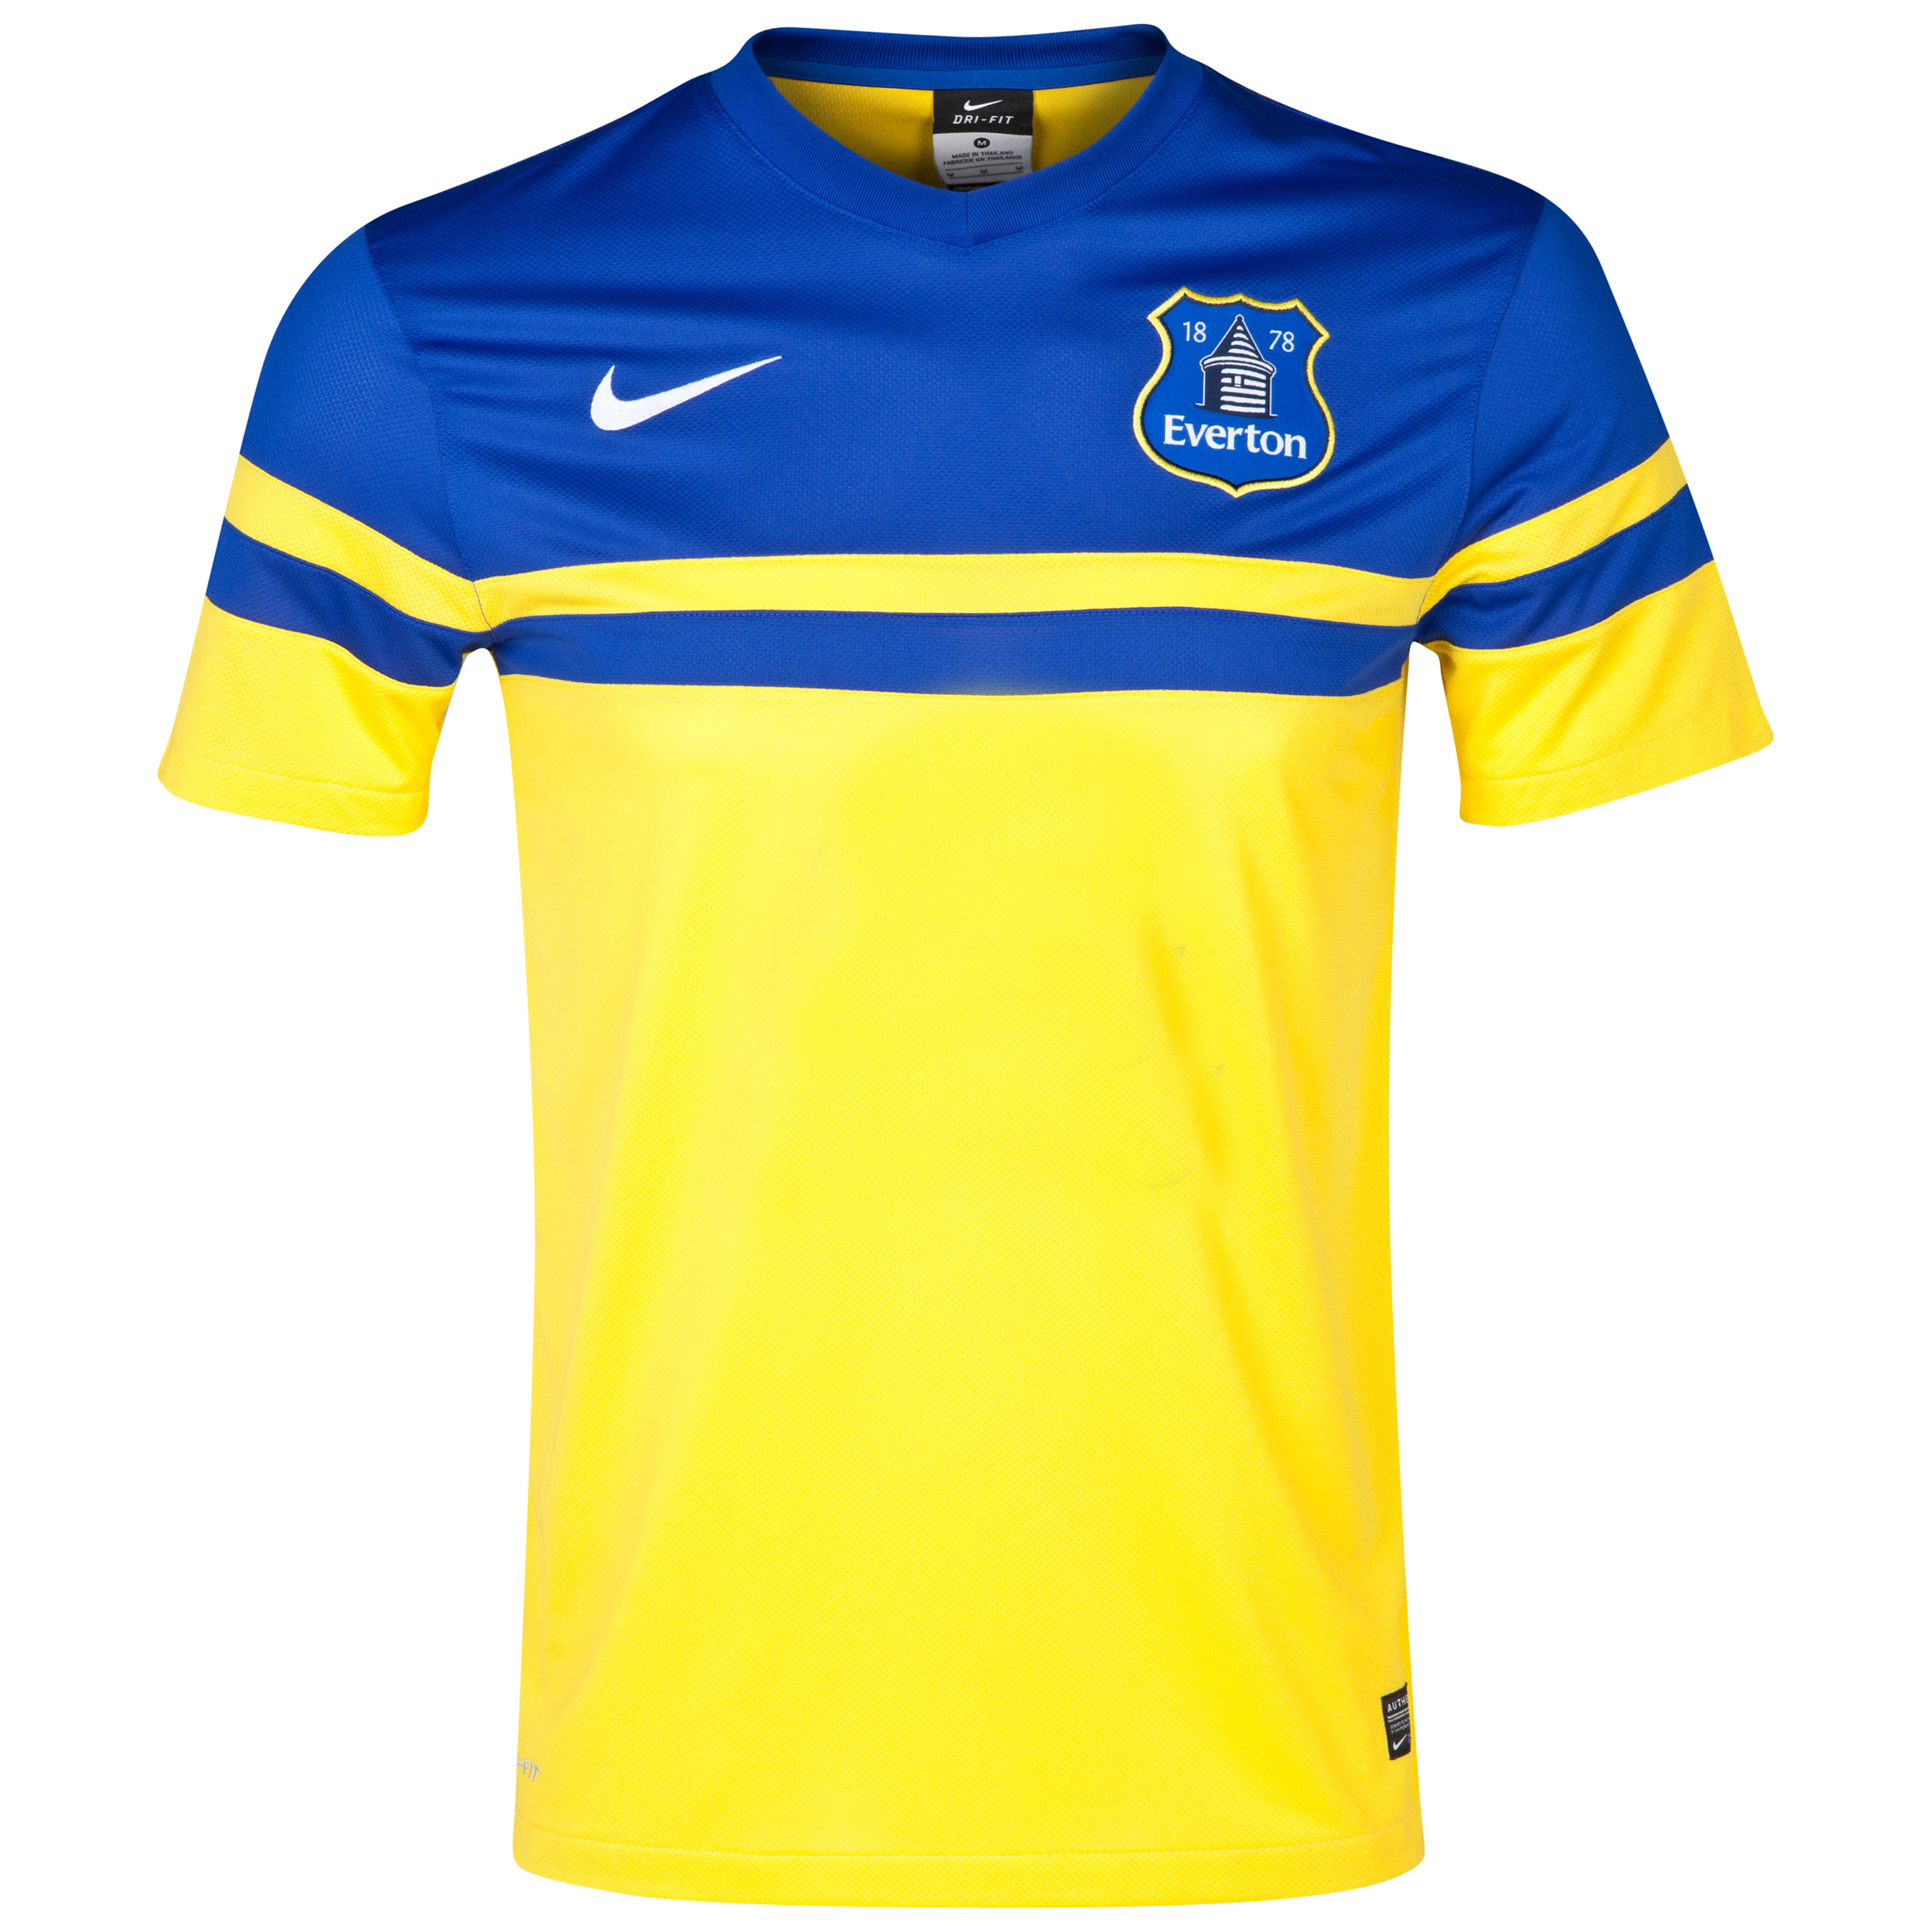 Everton Away Shirt 2013/14 - Junior Yellow